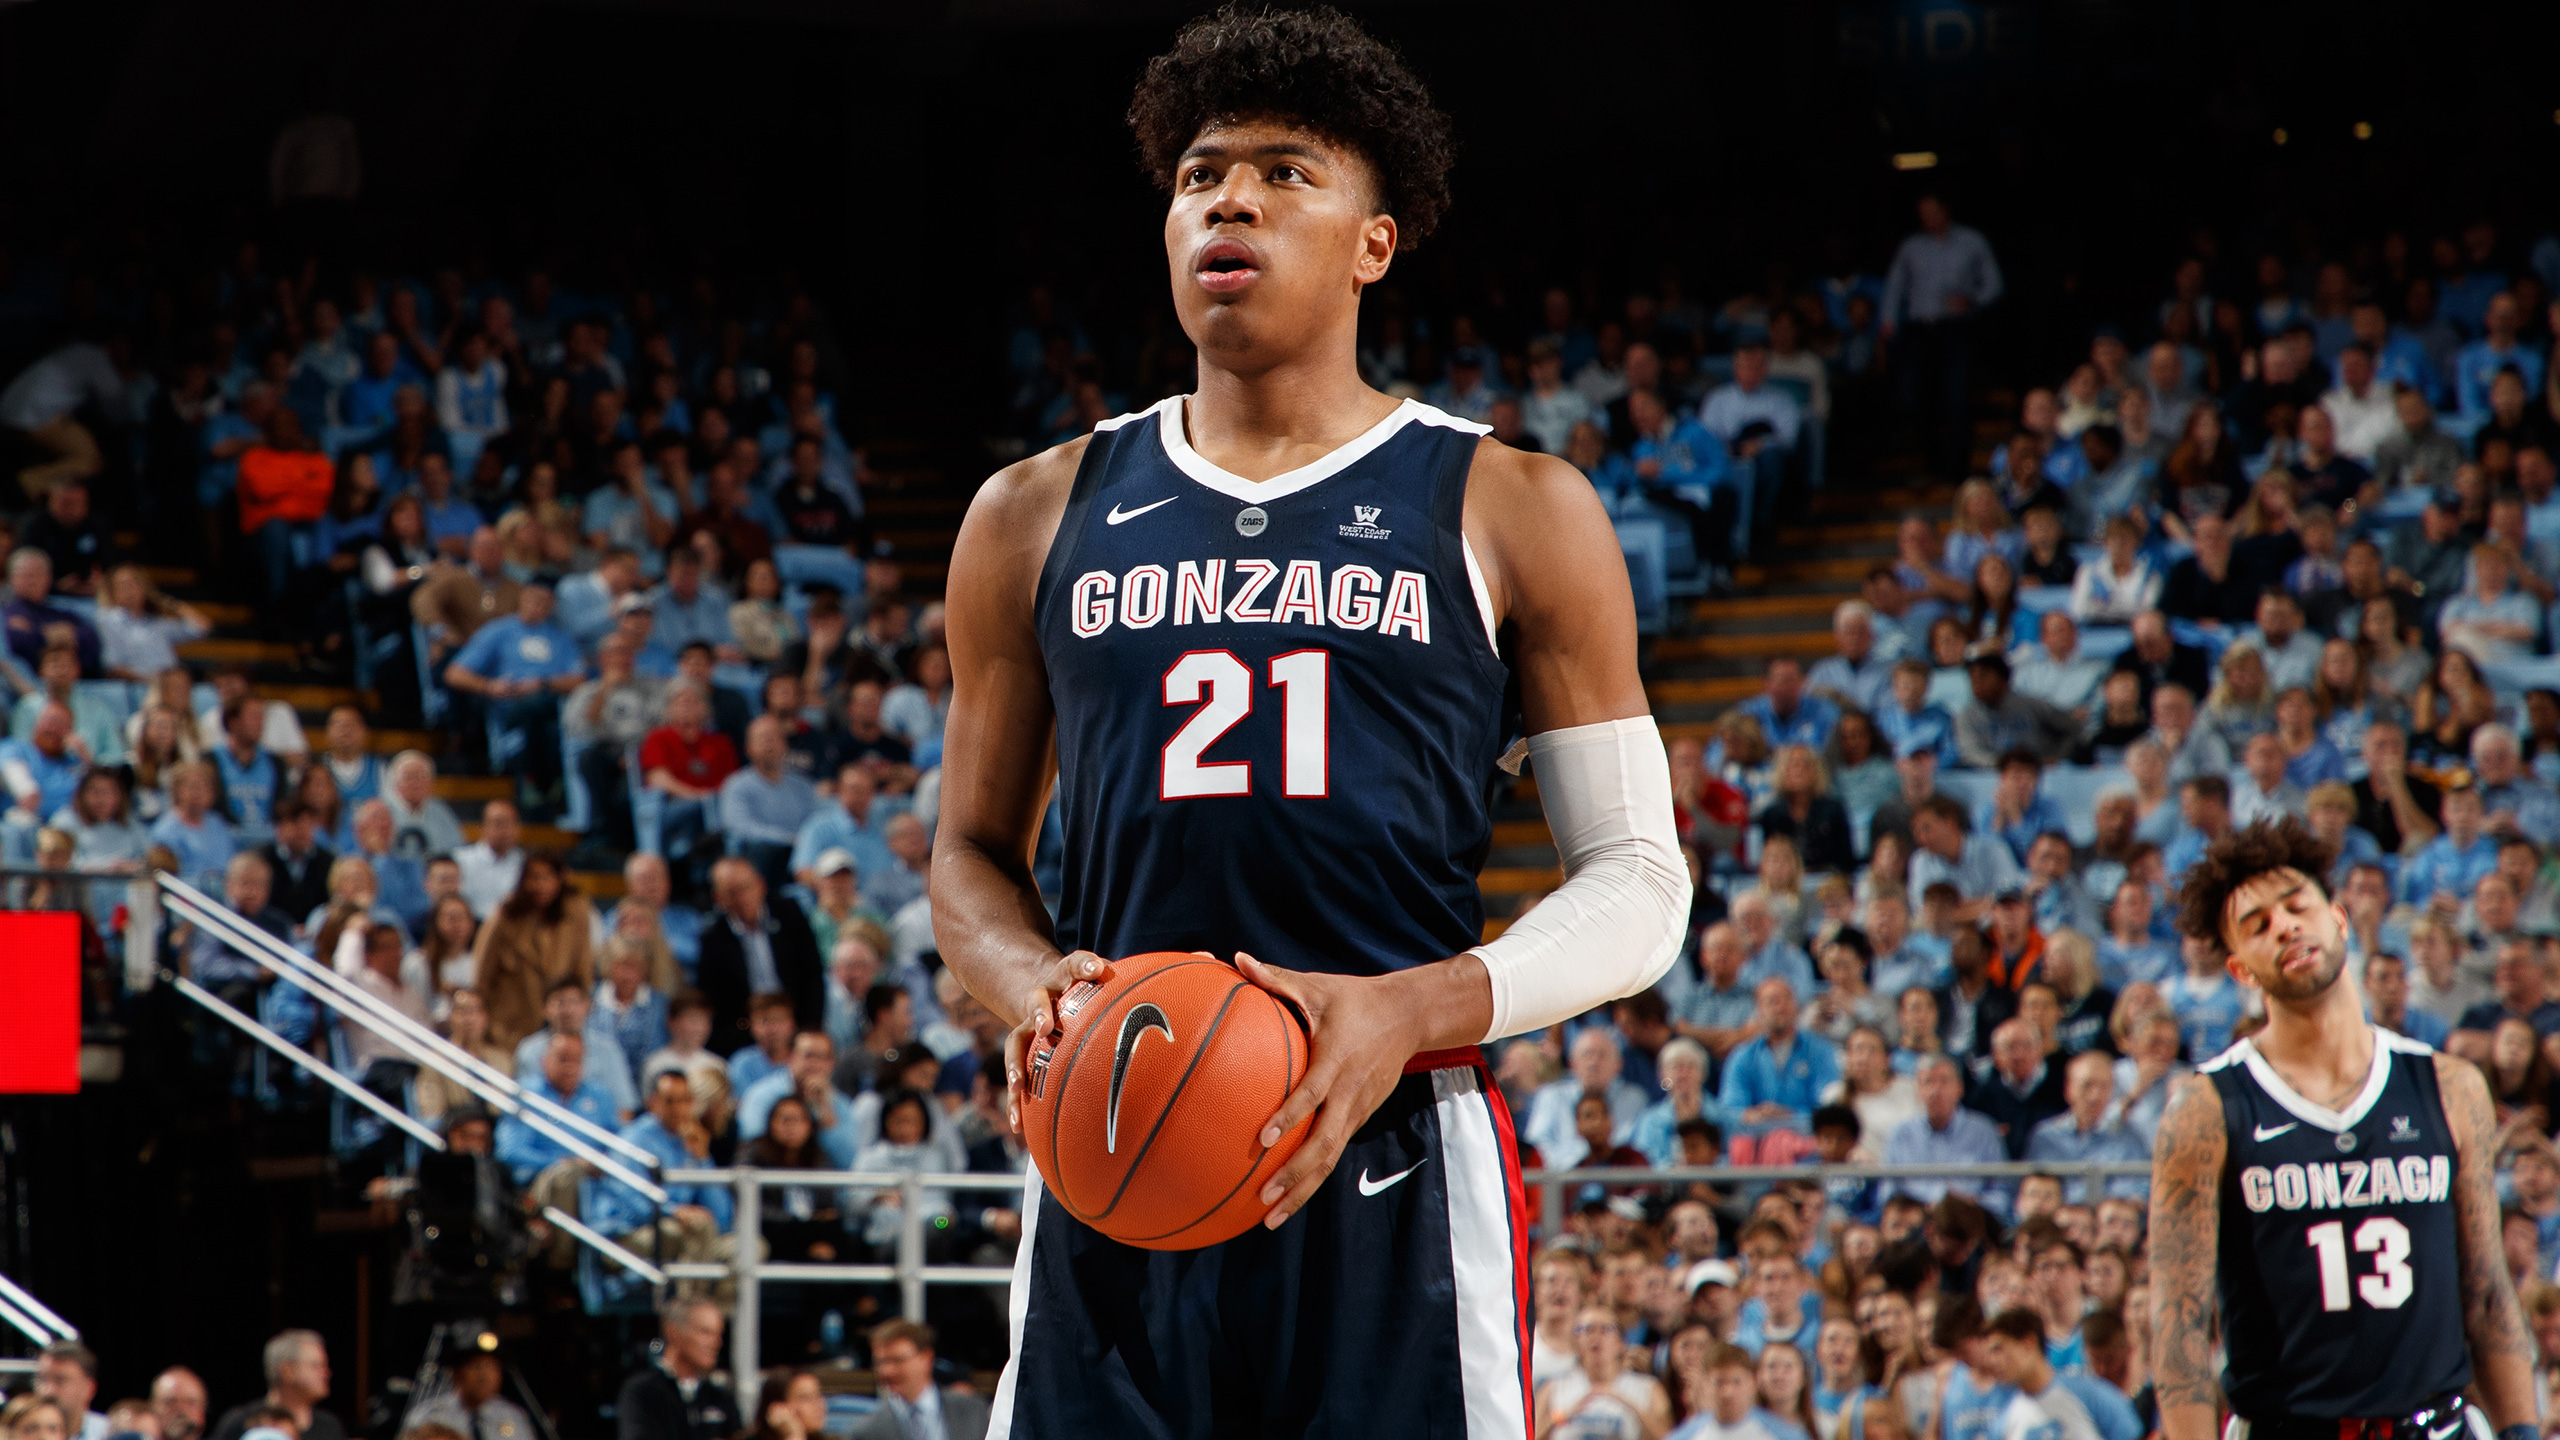 #3 Gonzaga vs. Loyola Marymount (M Basketball)